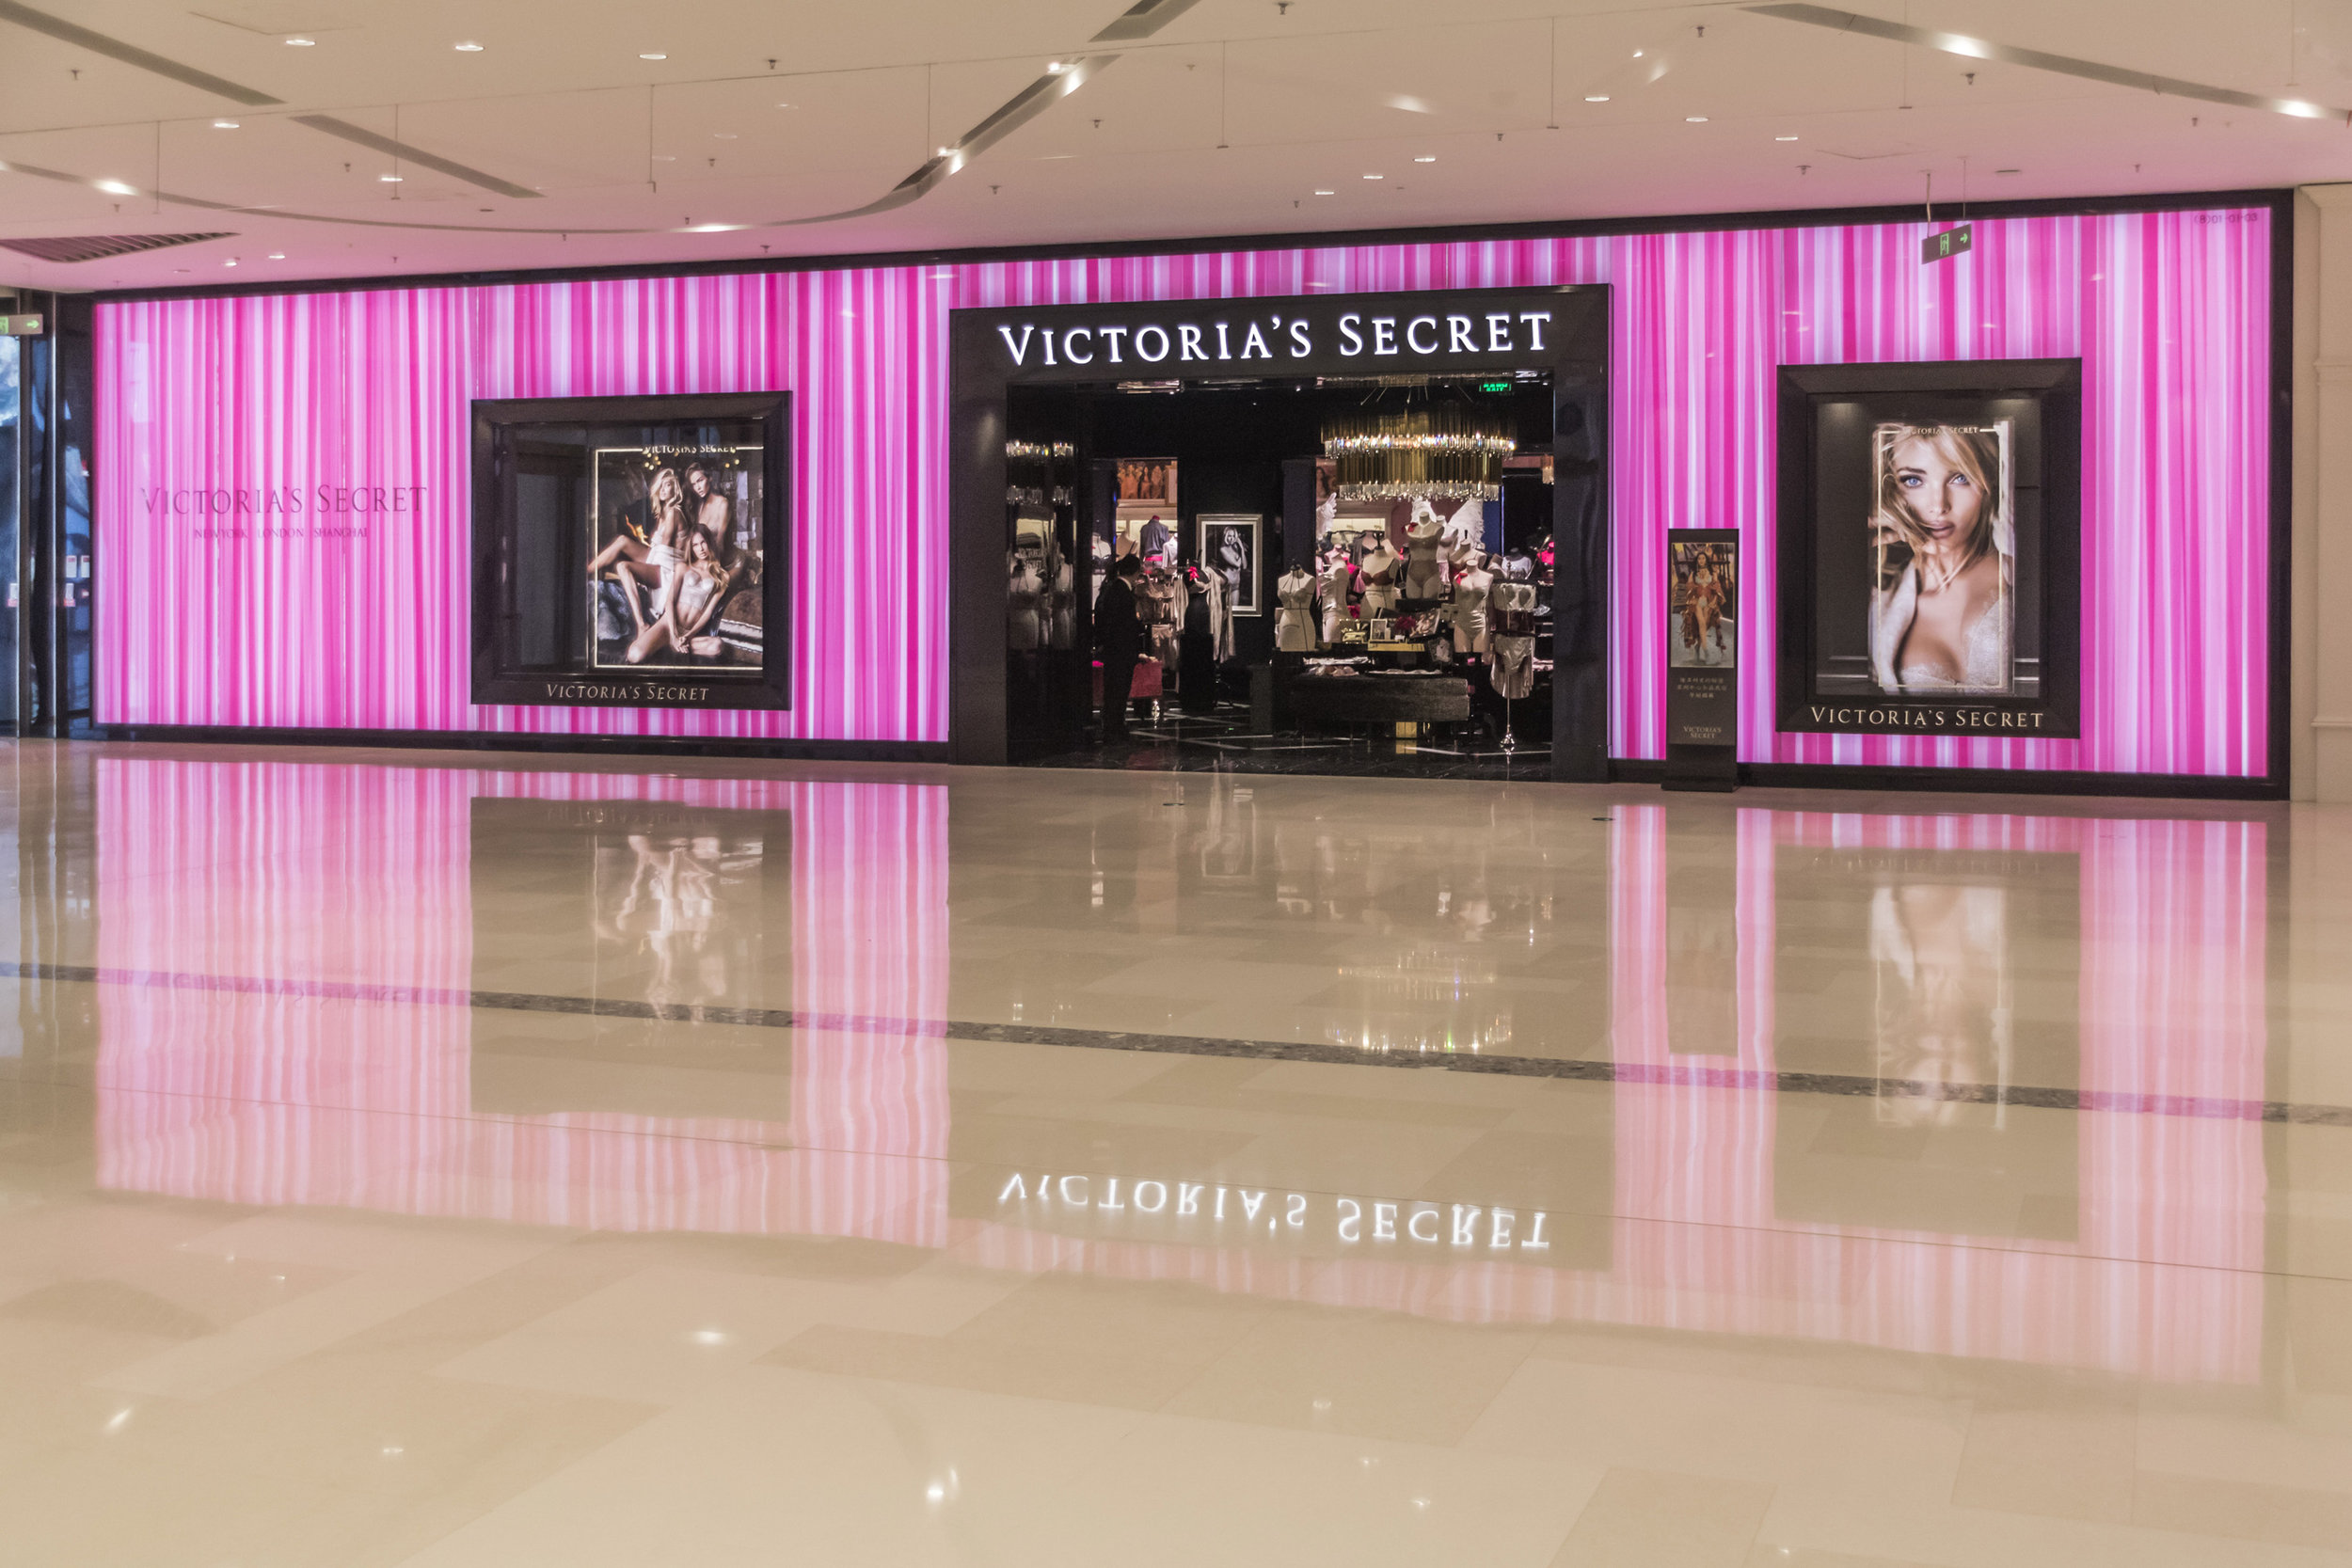 jeb_customprojects_retailfacades_victoriasecret_suzhou_china_07.jpg